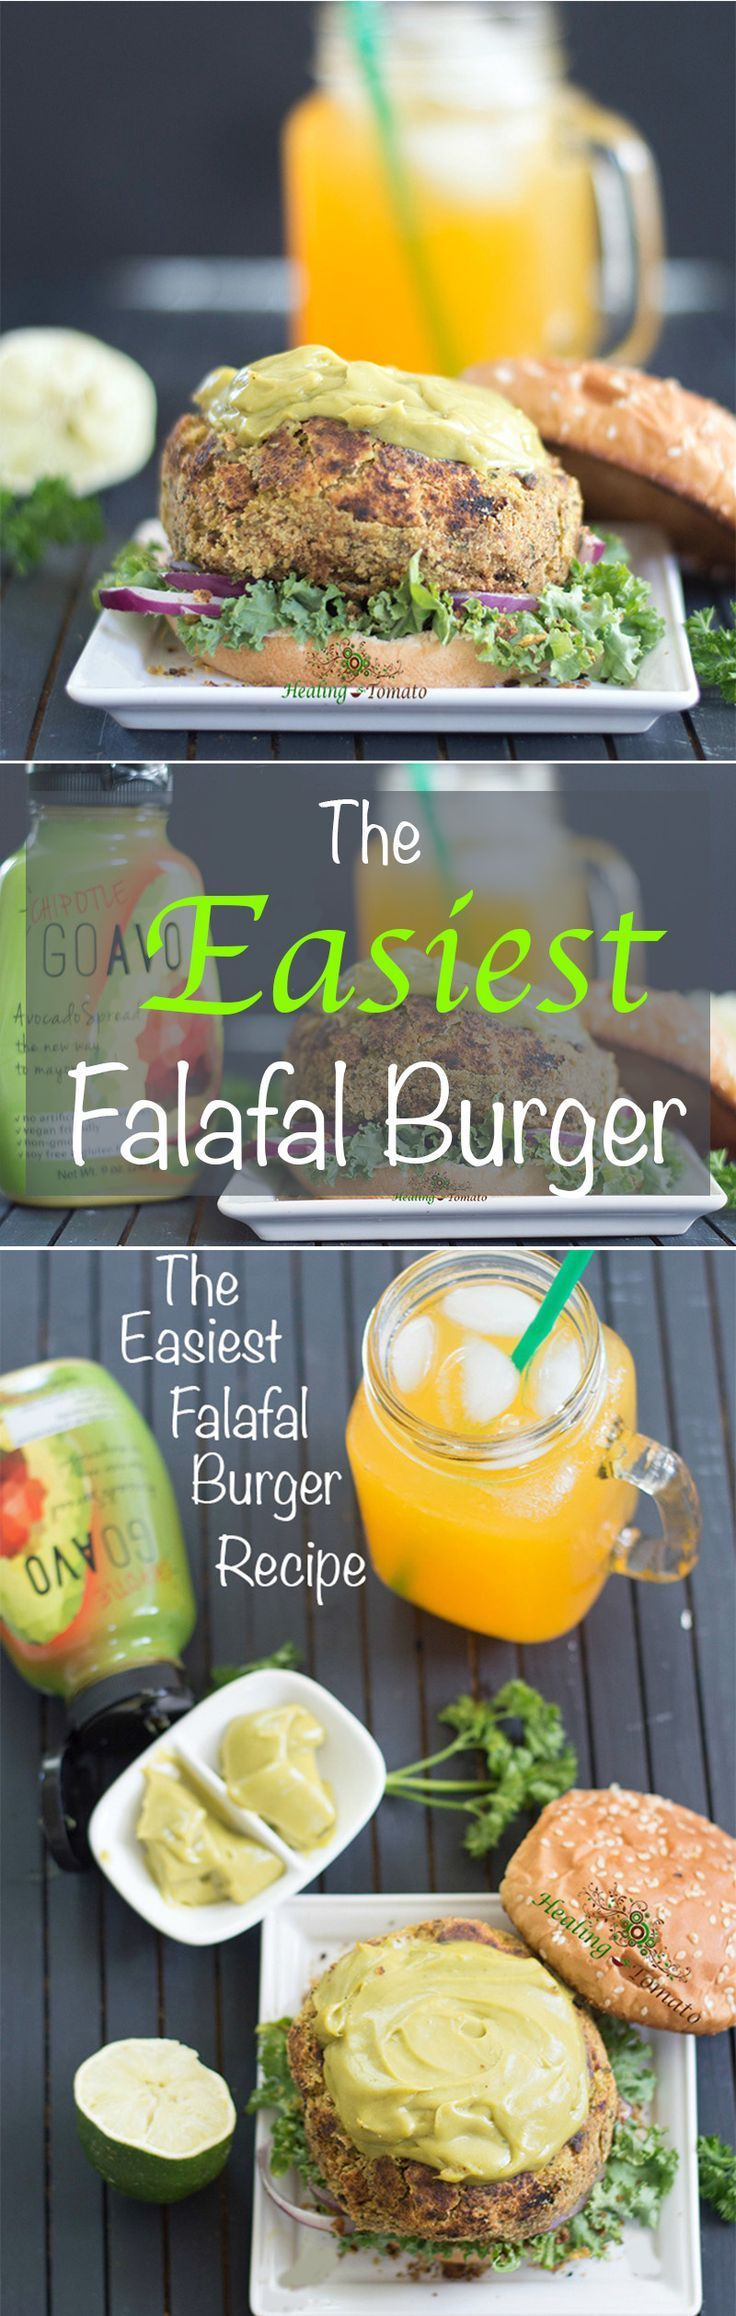 This falafal burger is the best veggie burger you will every eat. Made with chickpeas, parsley and flax seed meal. Takes only 30 minutes to make | Vegan burgers, comfort food, summer grilling, mediterranean burgers